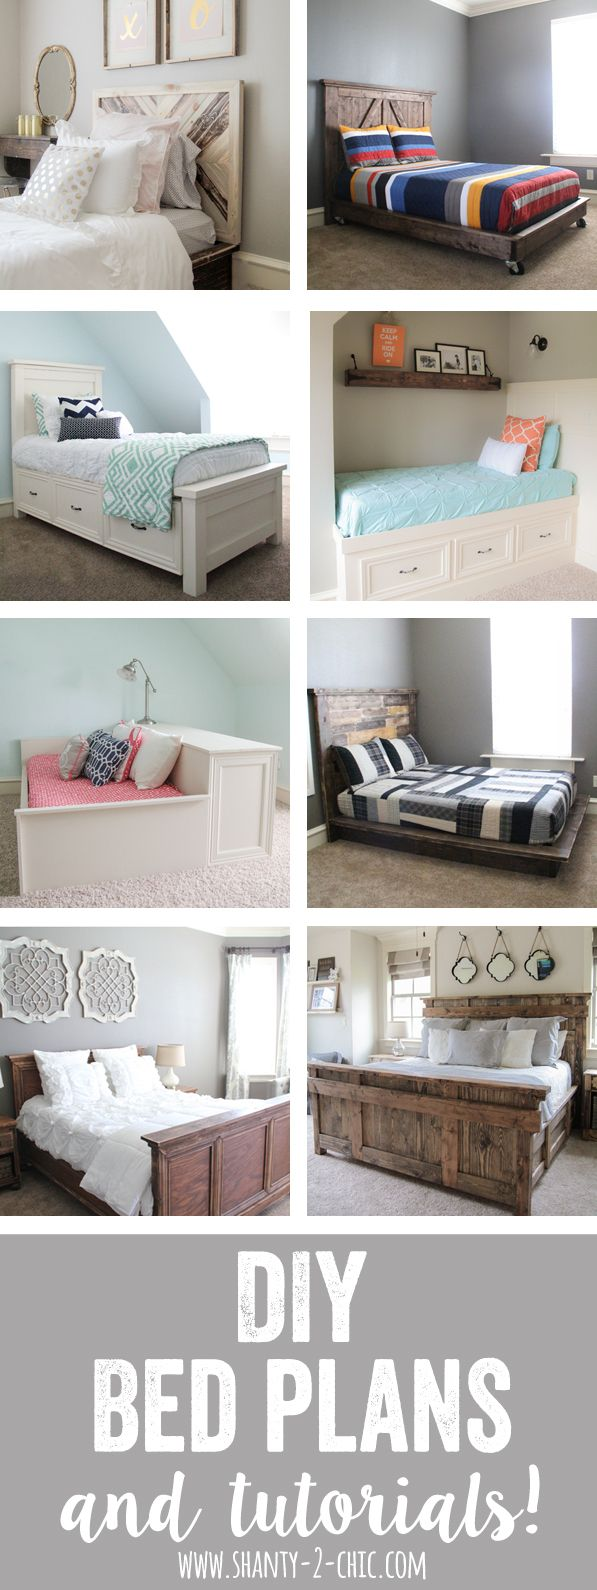 So many free DIY bed plans and tutorials!  They have full instructions for twin beds, full beds, queen beds and even king beds.  Great website for woodworking and DIY!  Full tutorial at www.shanty-2-chic.com!